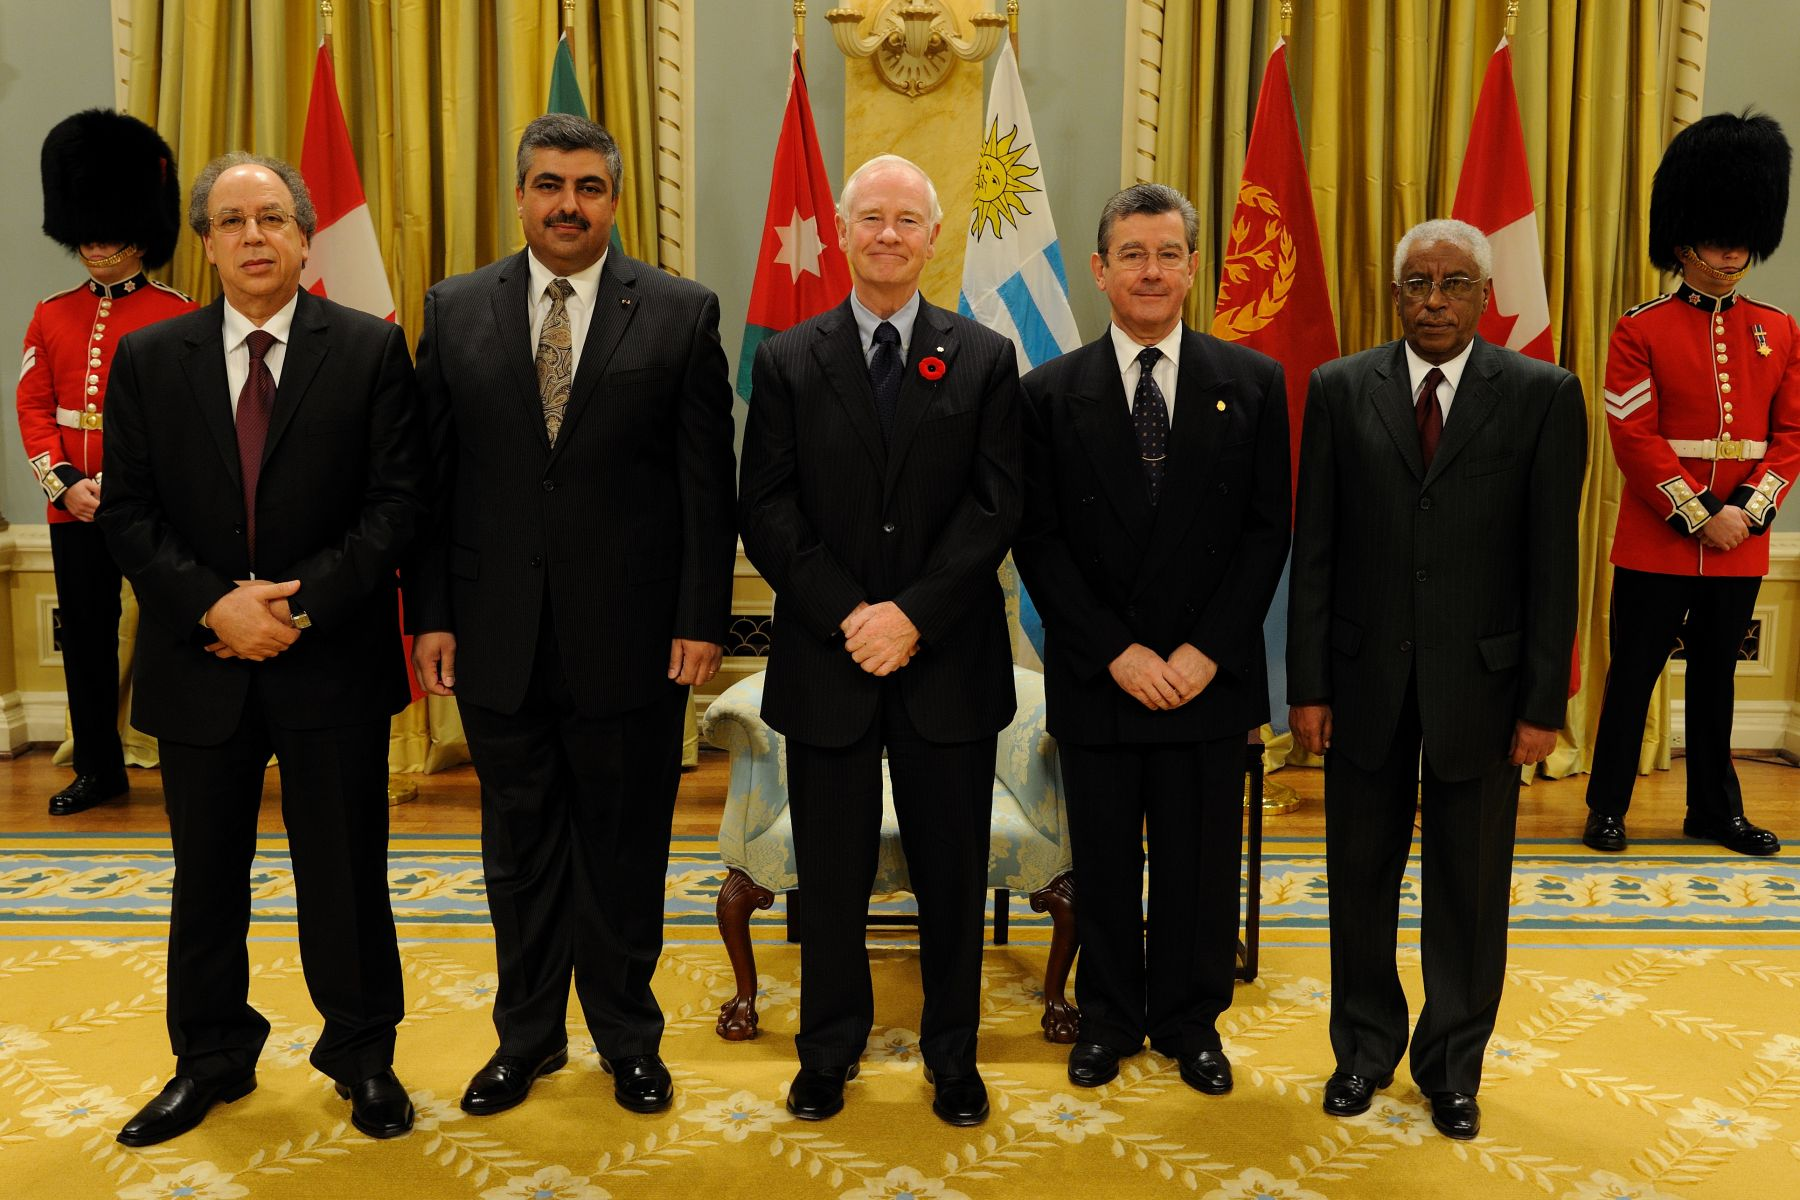 His Excellency the Right Honourable David Johnston, Governor General of Canada, received the credentials of four new ambassadors on Friday, October 29, 2010.